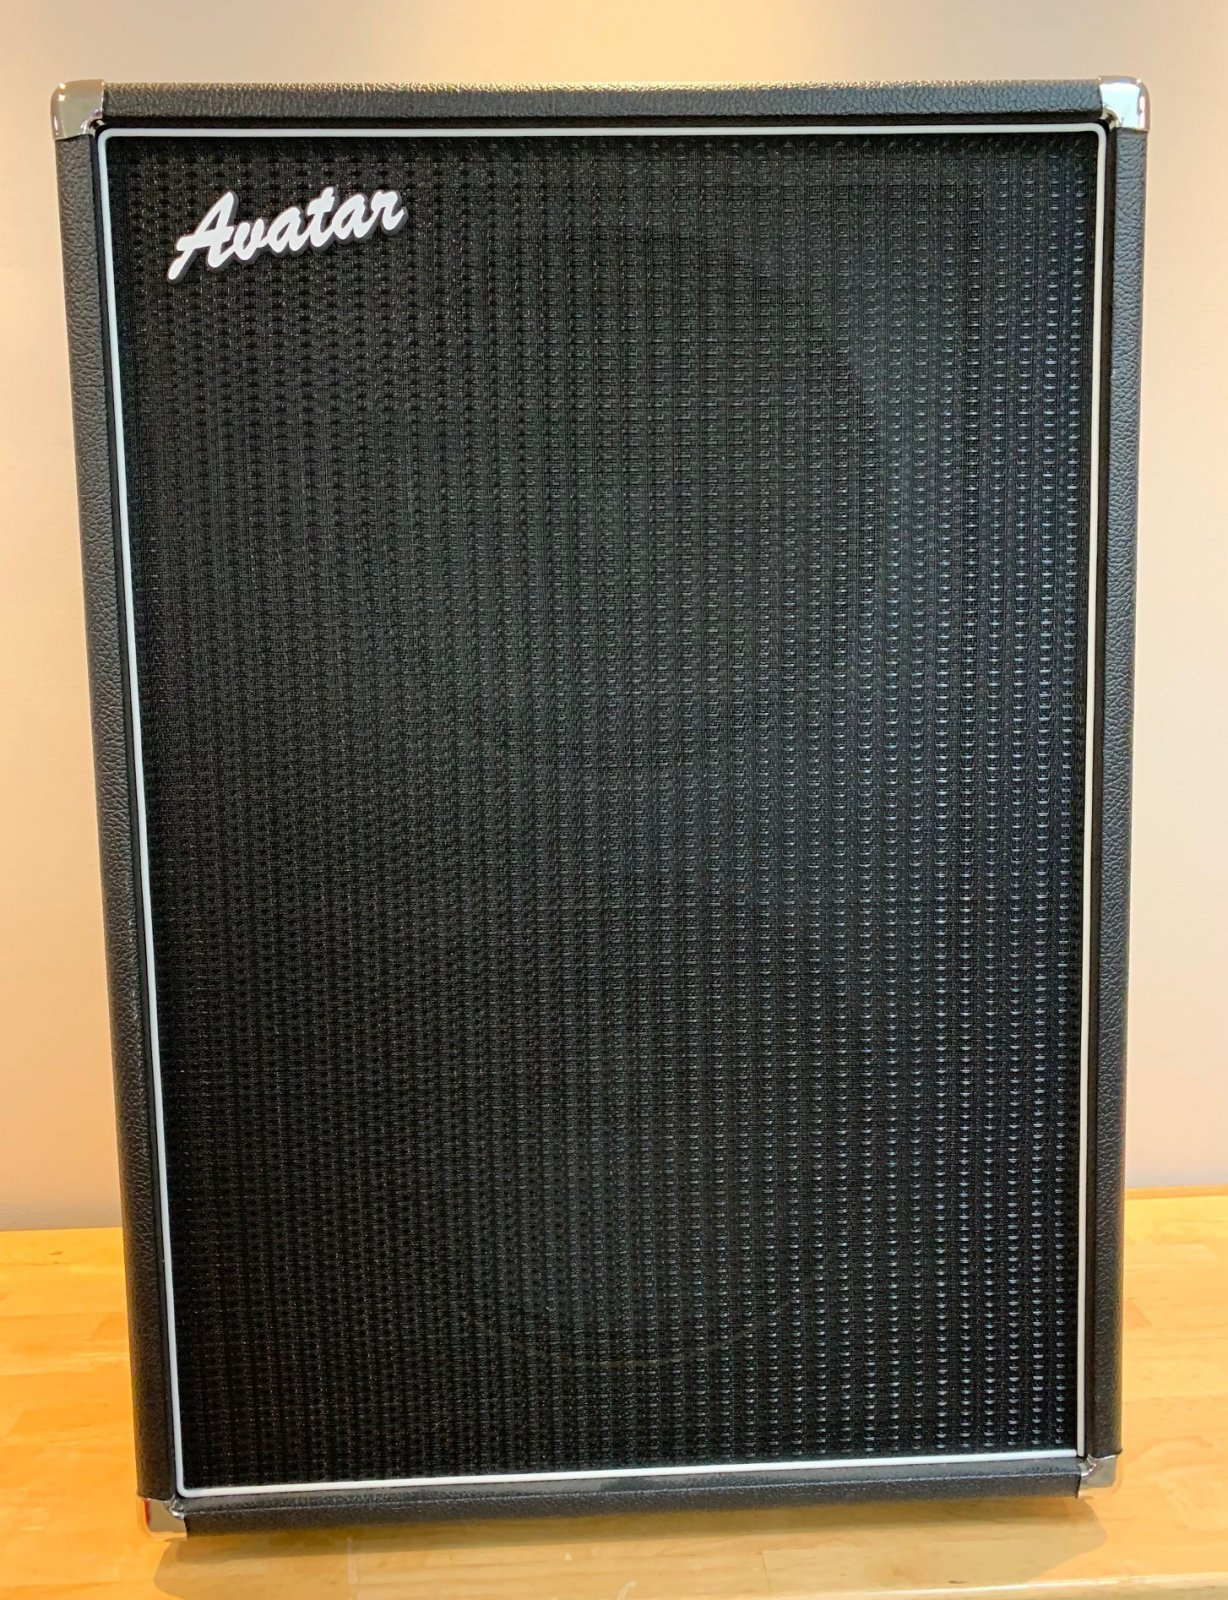 Used Avatar G212 Traditional Guitar Cabinet